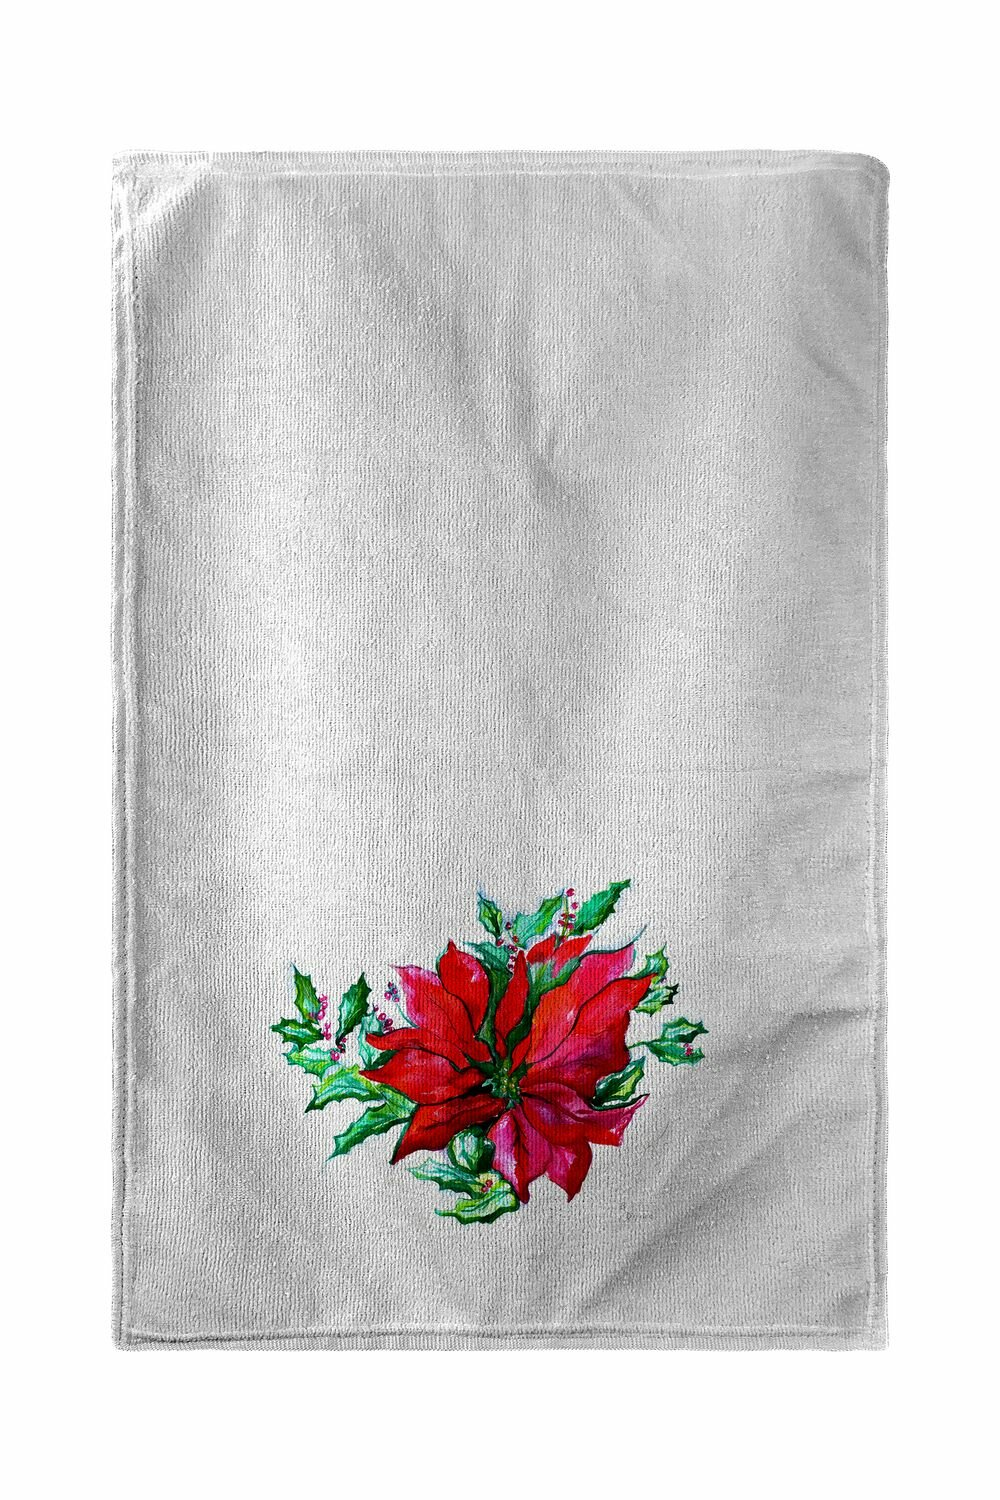 Bay Isle Home Bookout Poinsettia Beach Towel Wayfair